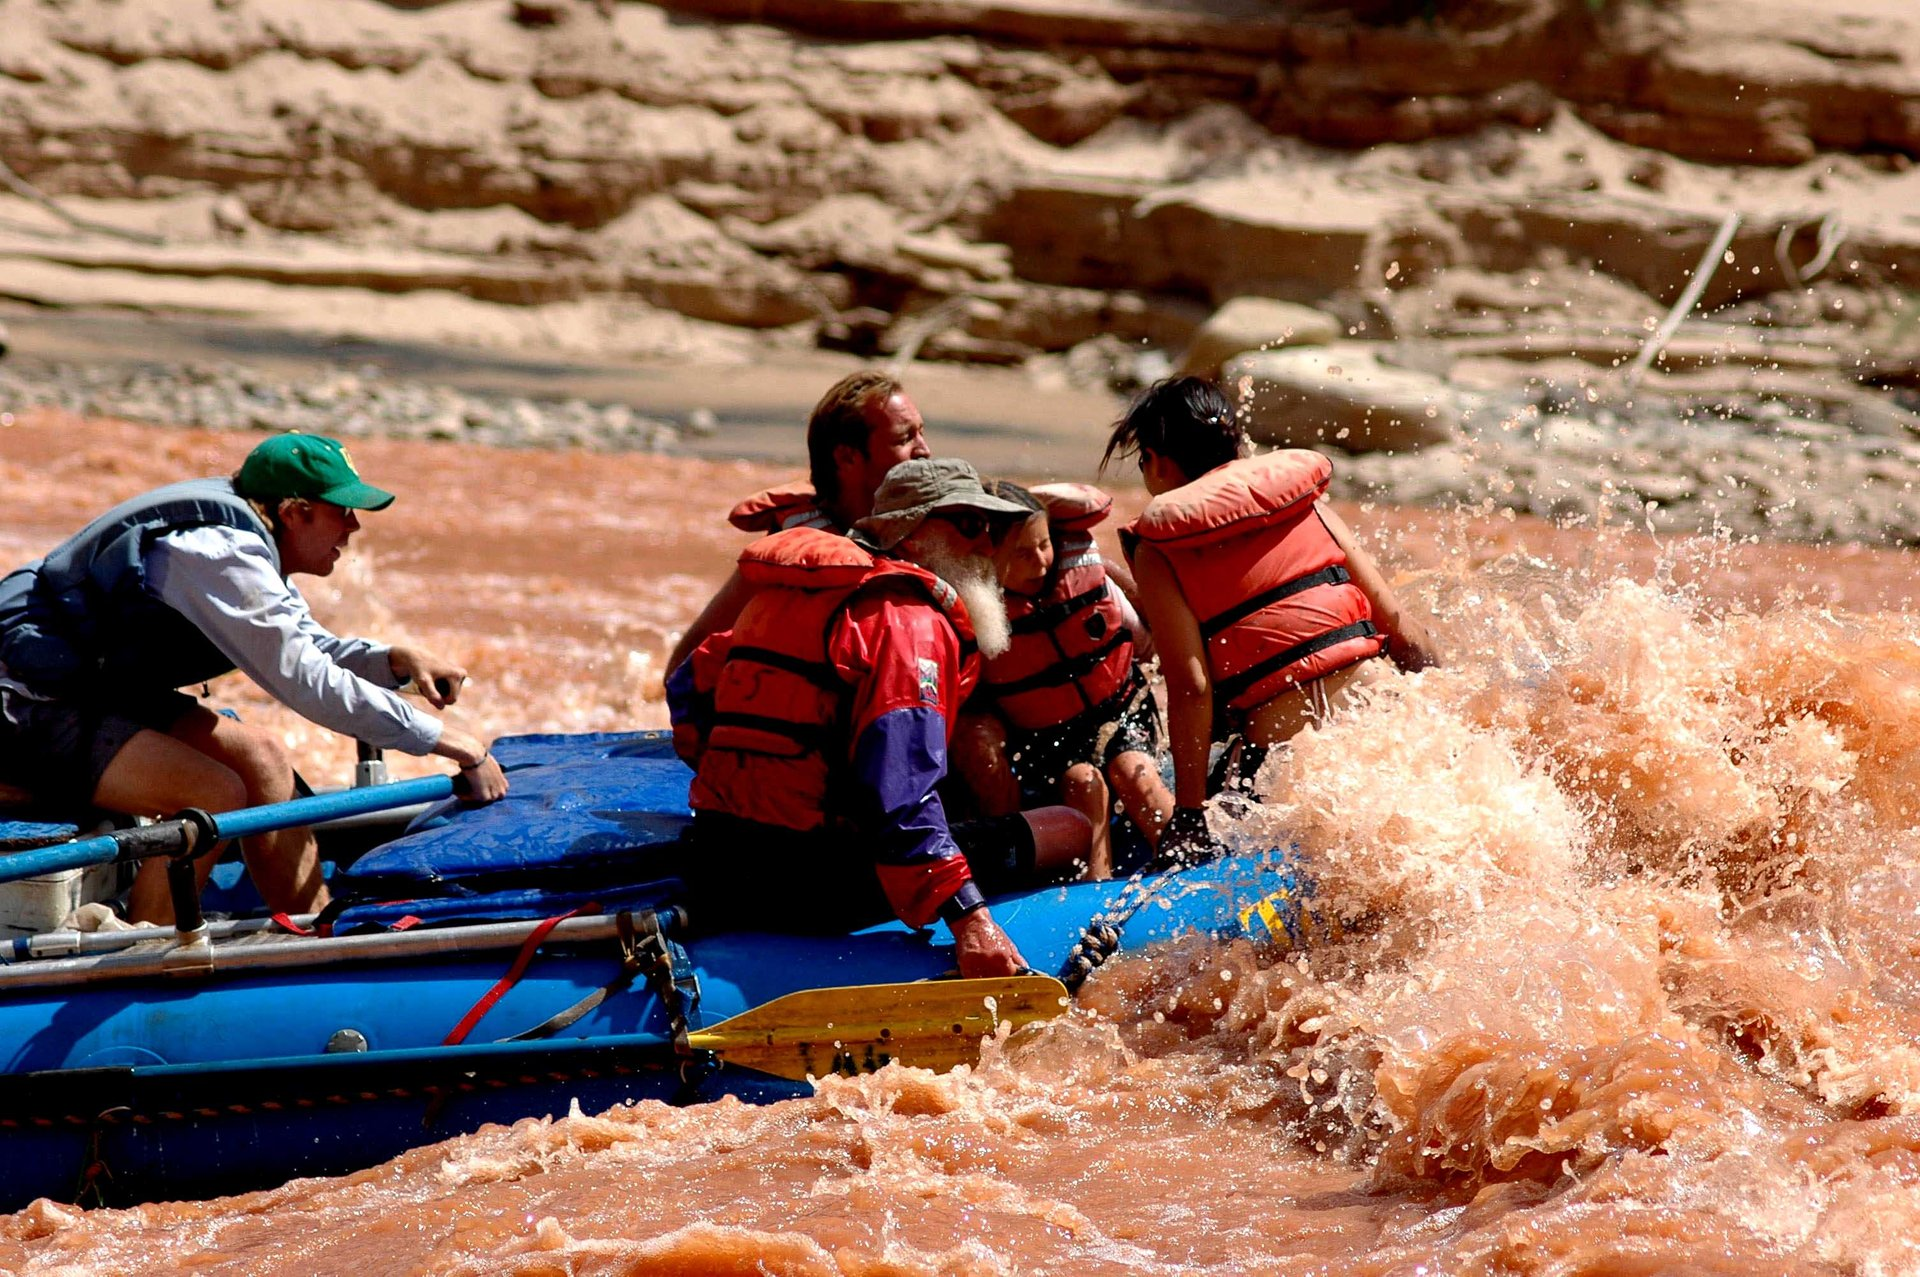 Cataract Canyon Rafting in Utah 2020 - Best Time